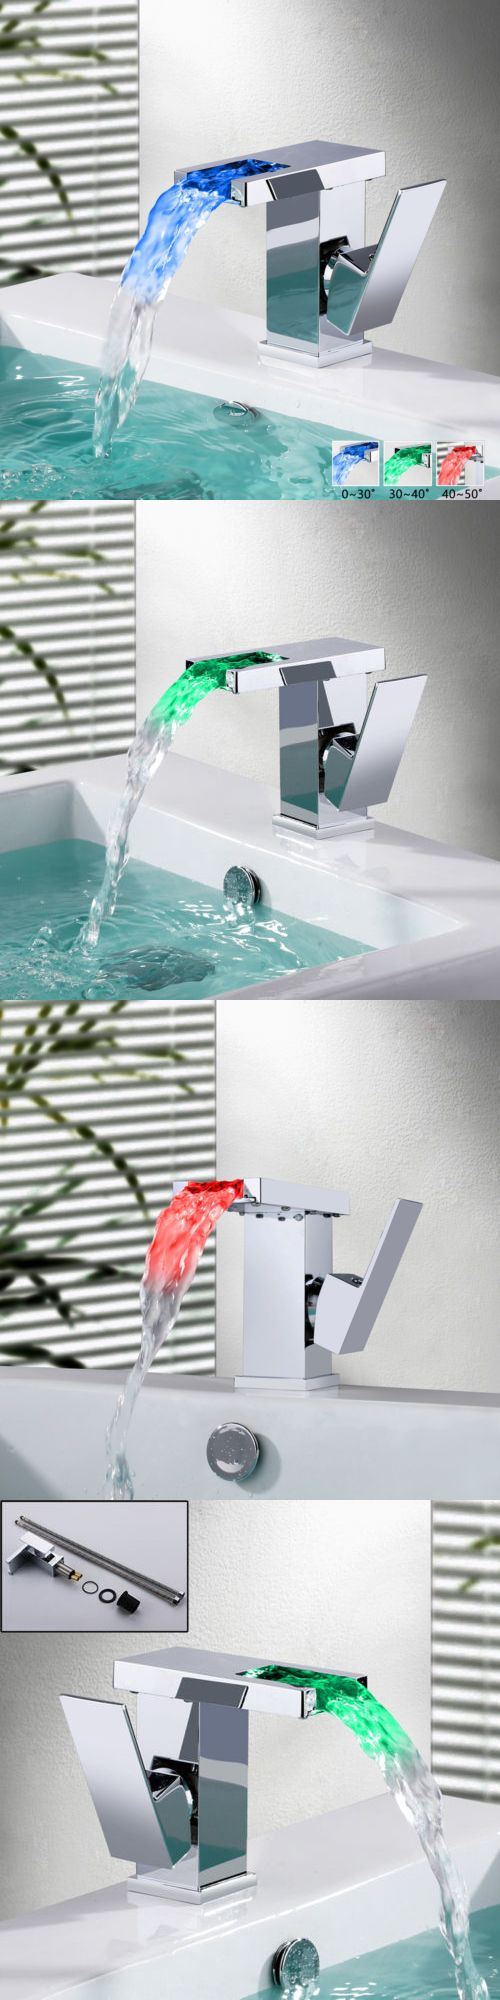 Bathroom sink faucet one hole double handle basin mixer tap ebay - Faucets 42024 Led Rgb Waterfall Basin Sink Faucet Chrome One Handle Bathroom Mixer Tap Modern